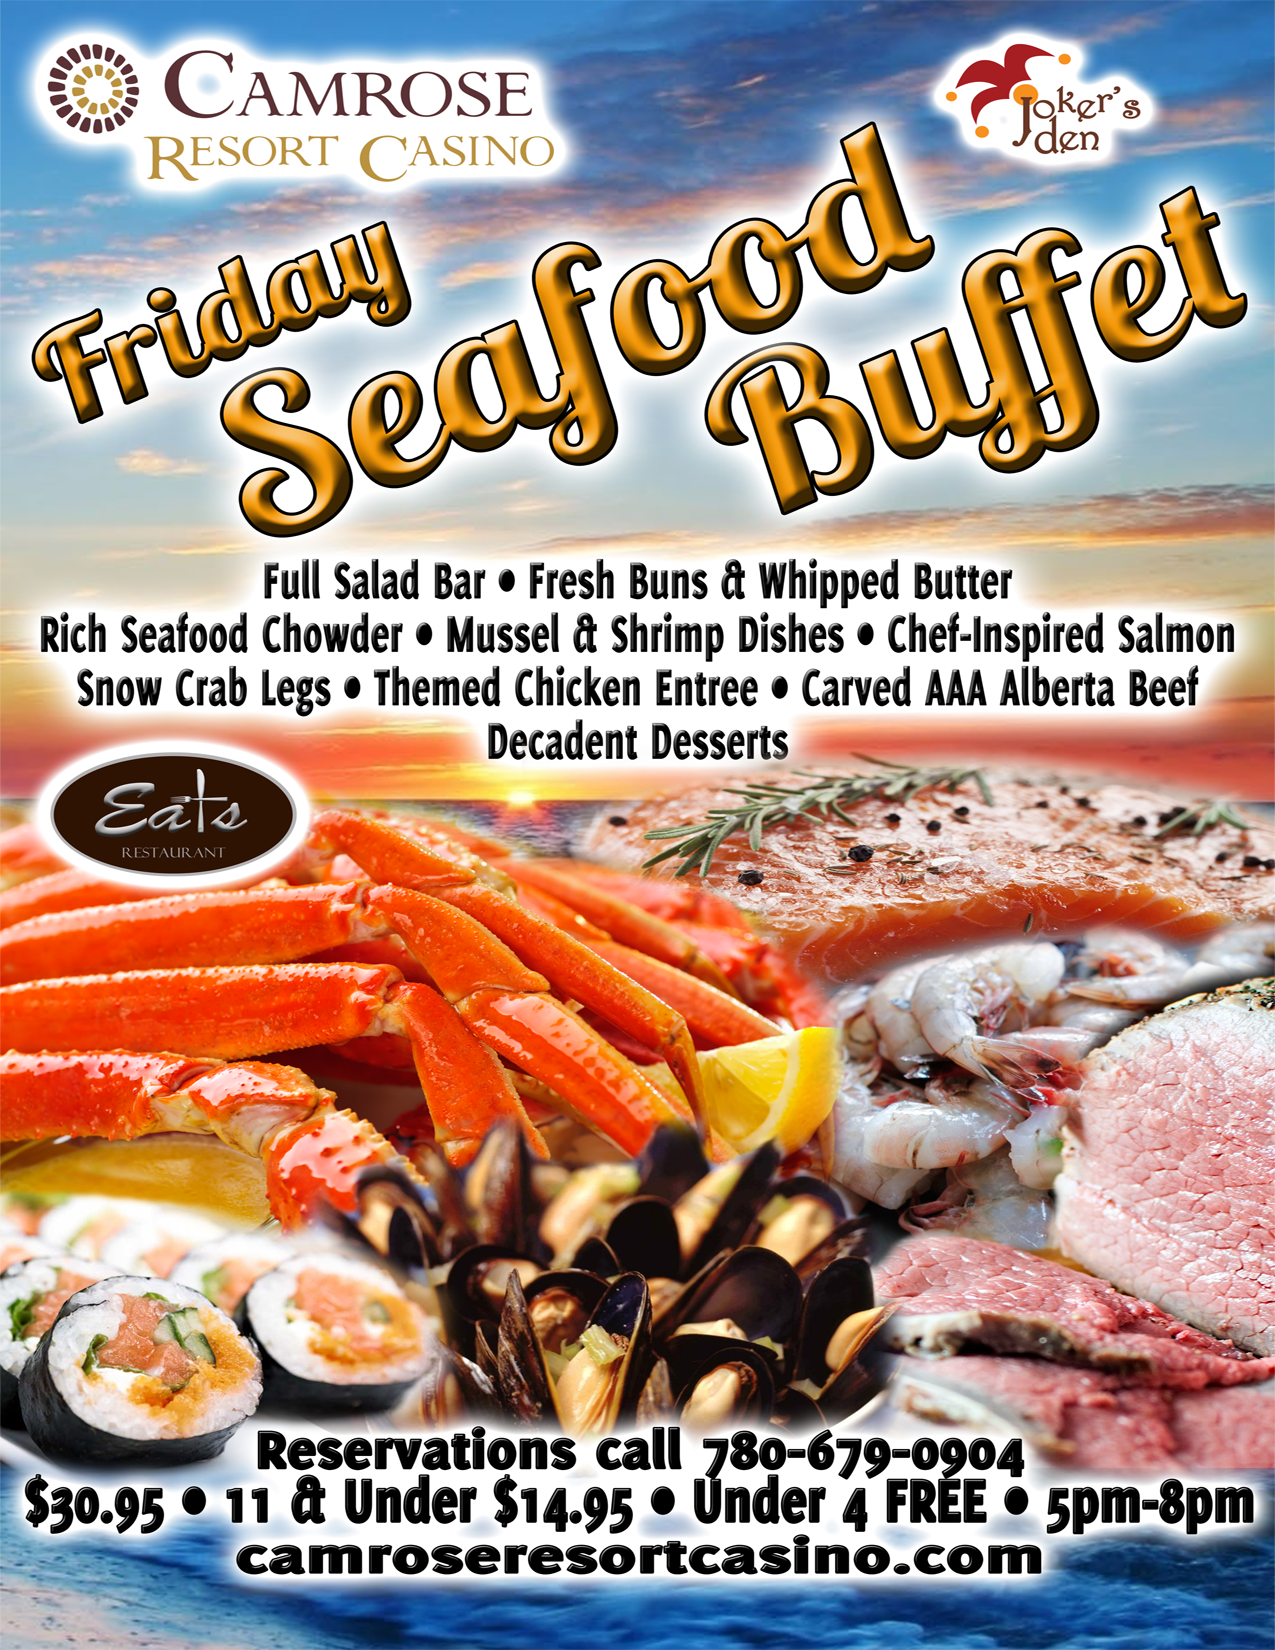 Northern Lights Casino Seafood Buffet